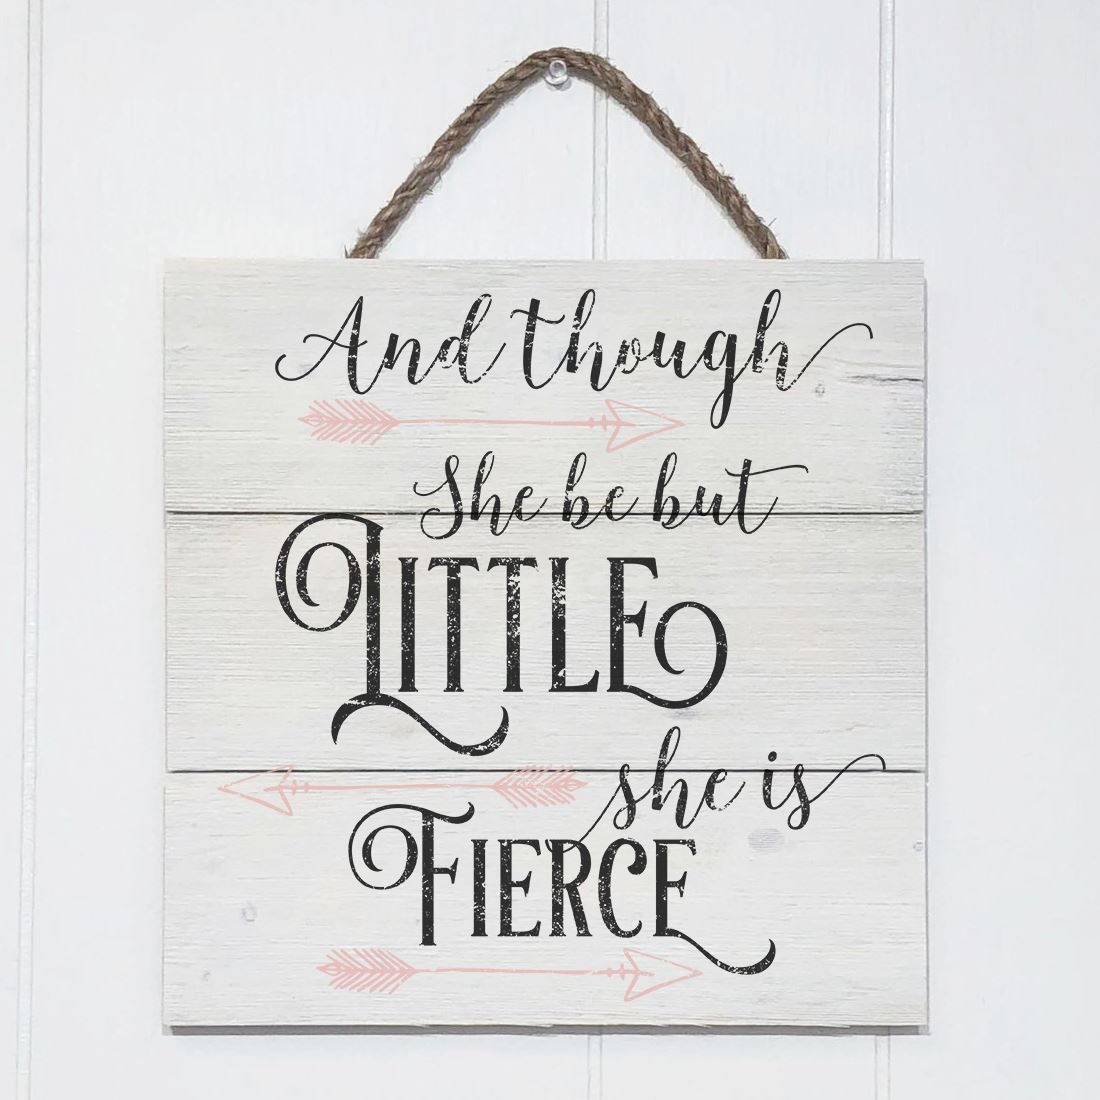 Artblox Rustic Nursery Room Sign And Though She Be but Little She is Fierce Quotes, Arrows Ornaments Artwork, Barn Wood Pallet Farmhouse Wooden Plaque Art Print, 10.5x10.5 - White